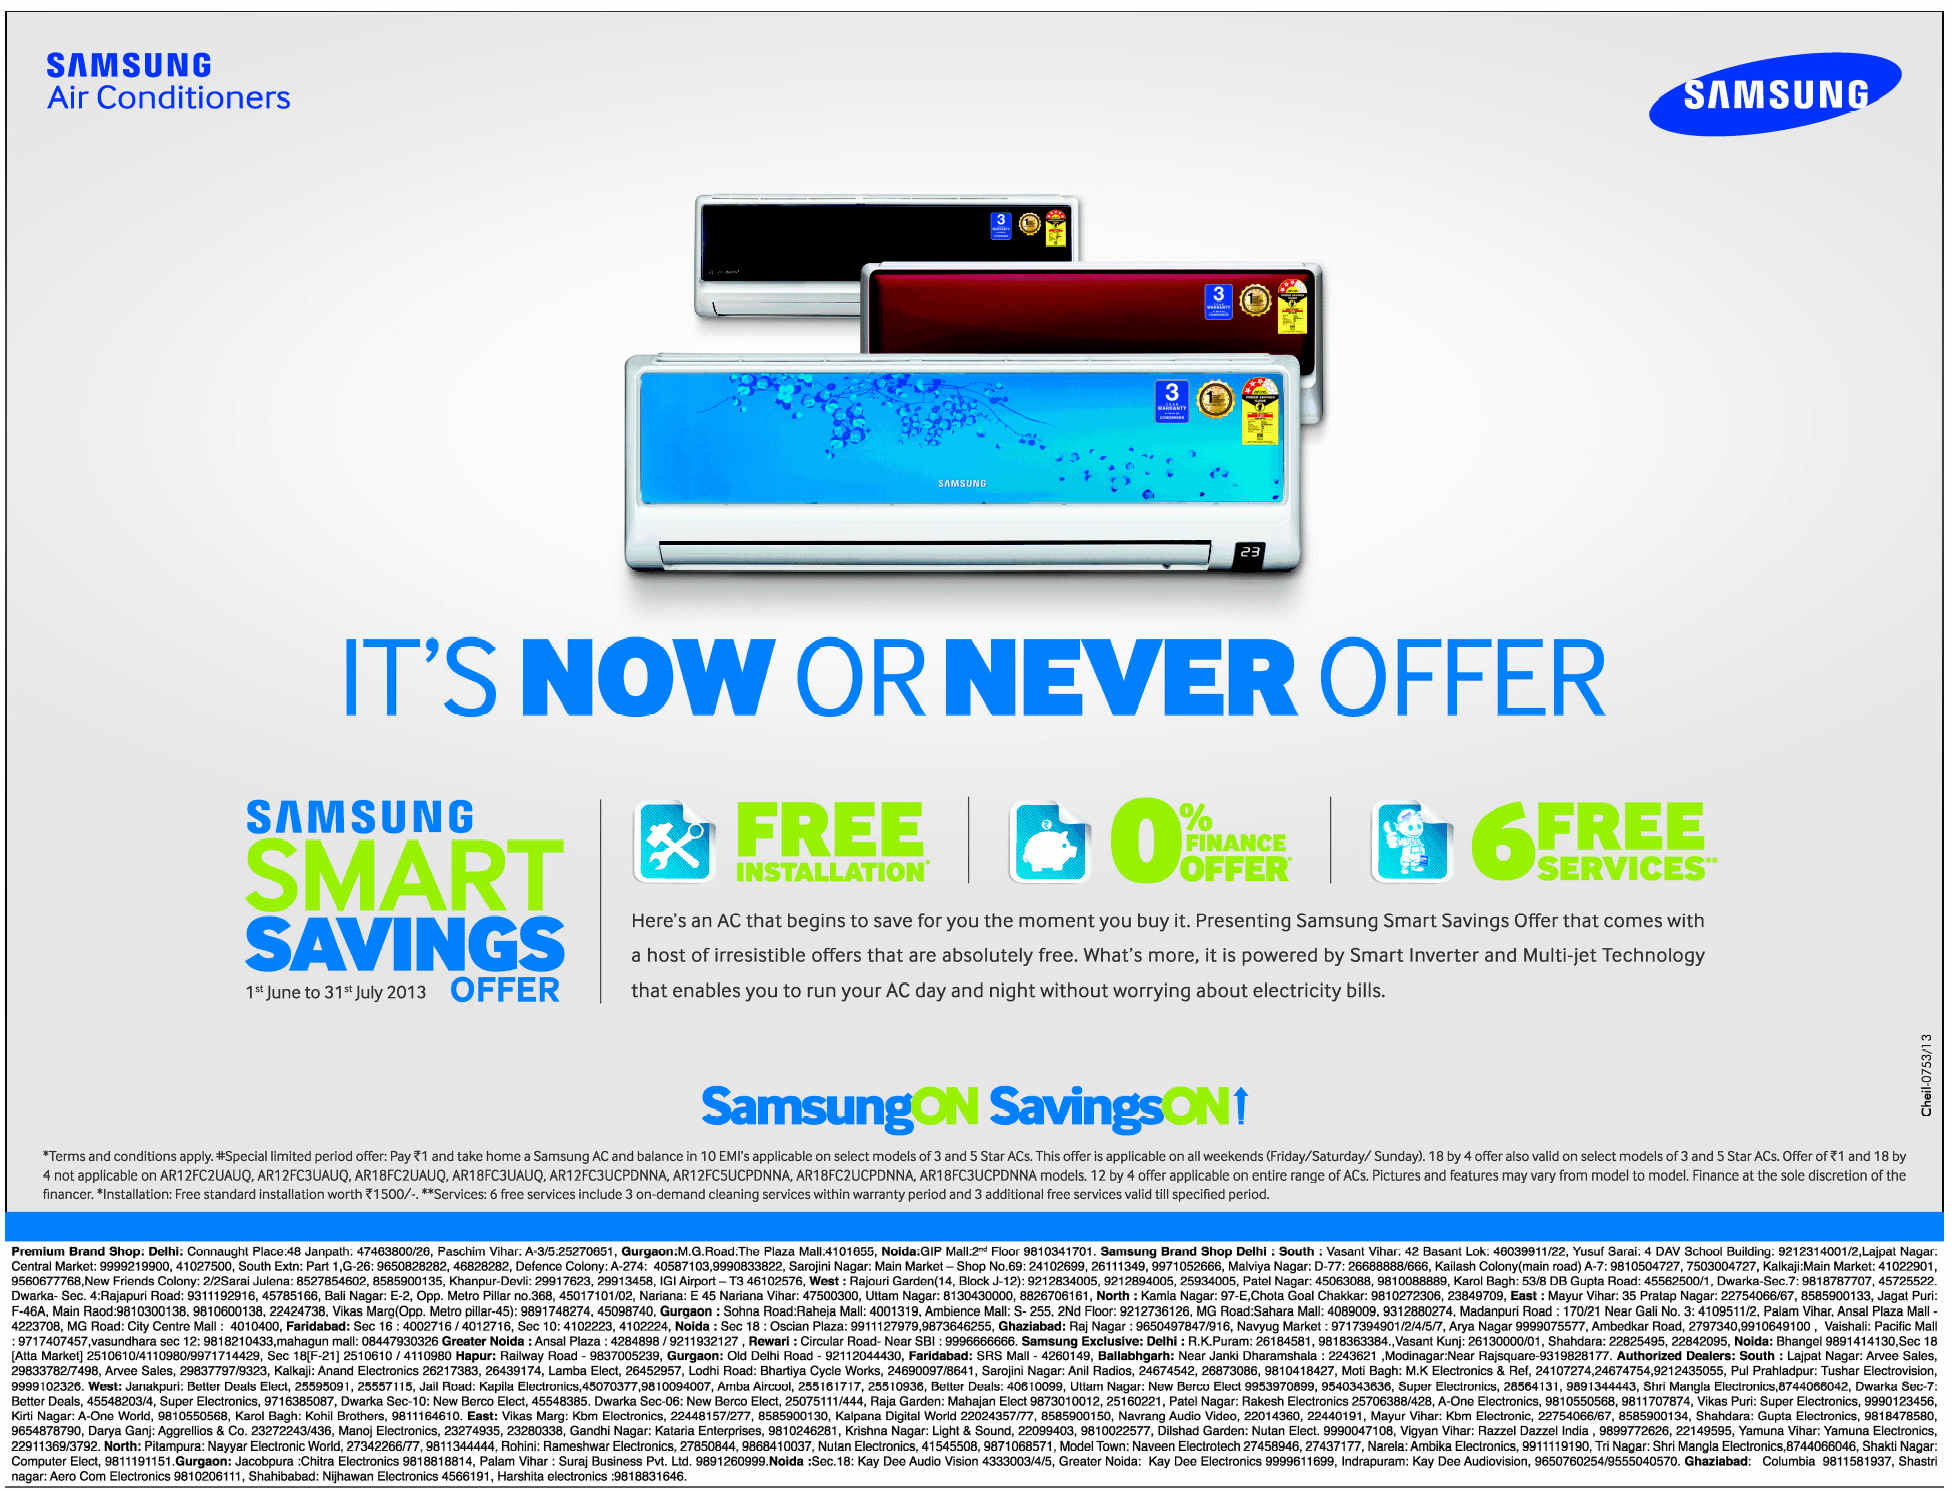 samsung air conditioners - now or never offer / mumbai, new delhi